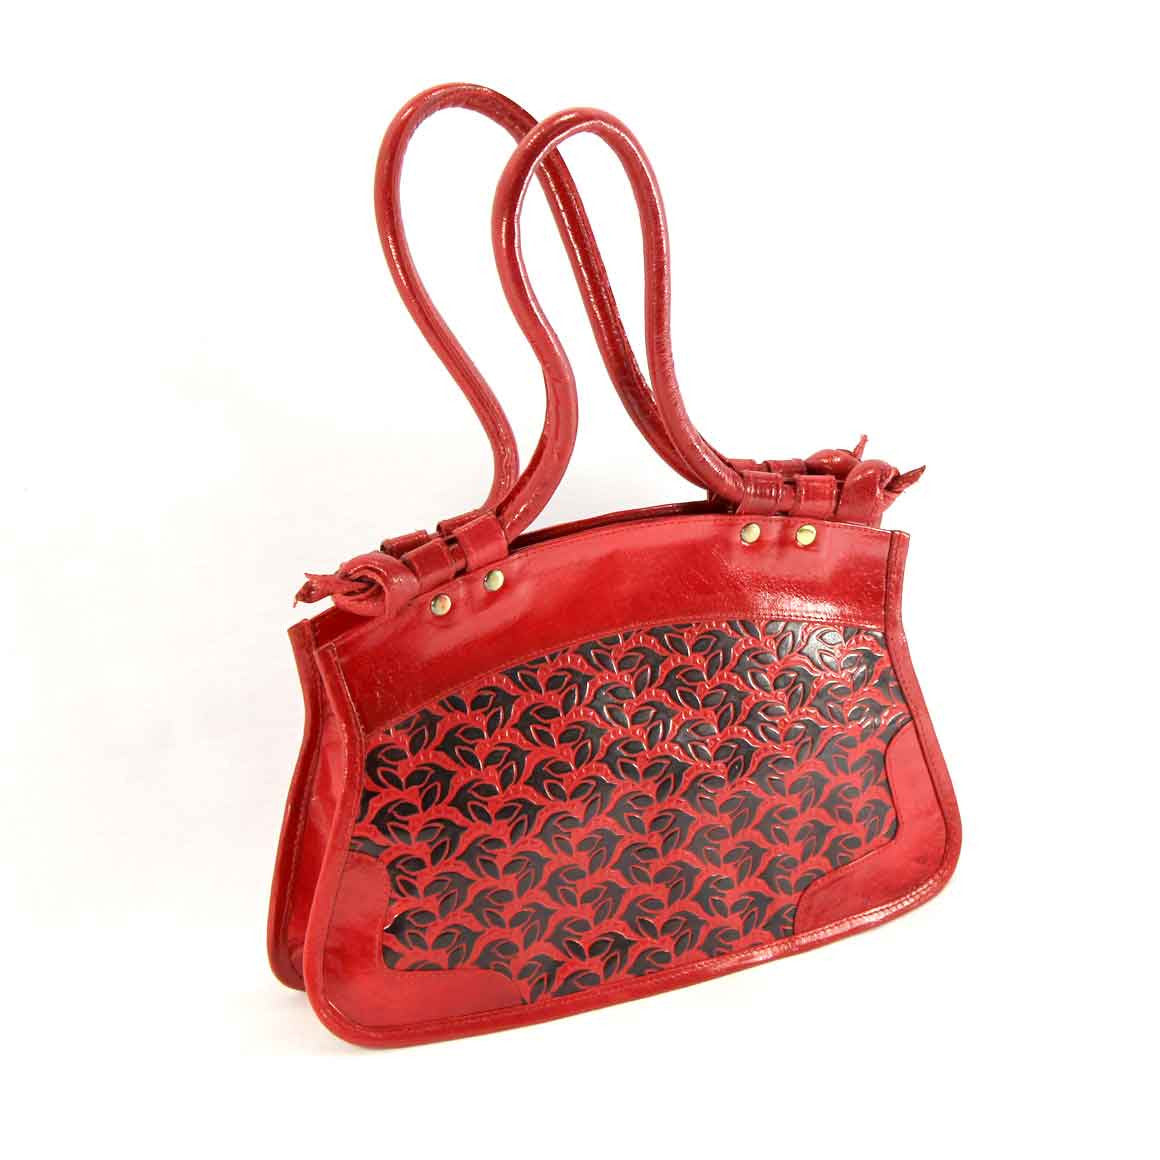 Fair Trade Ethical Red Leather Bag